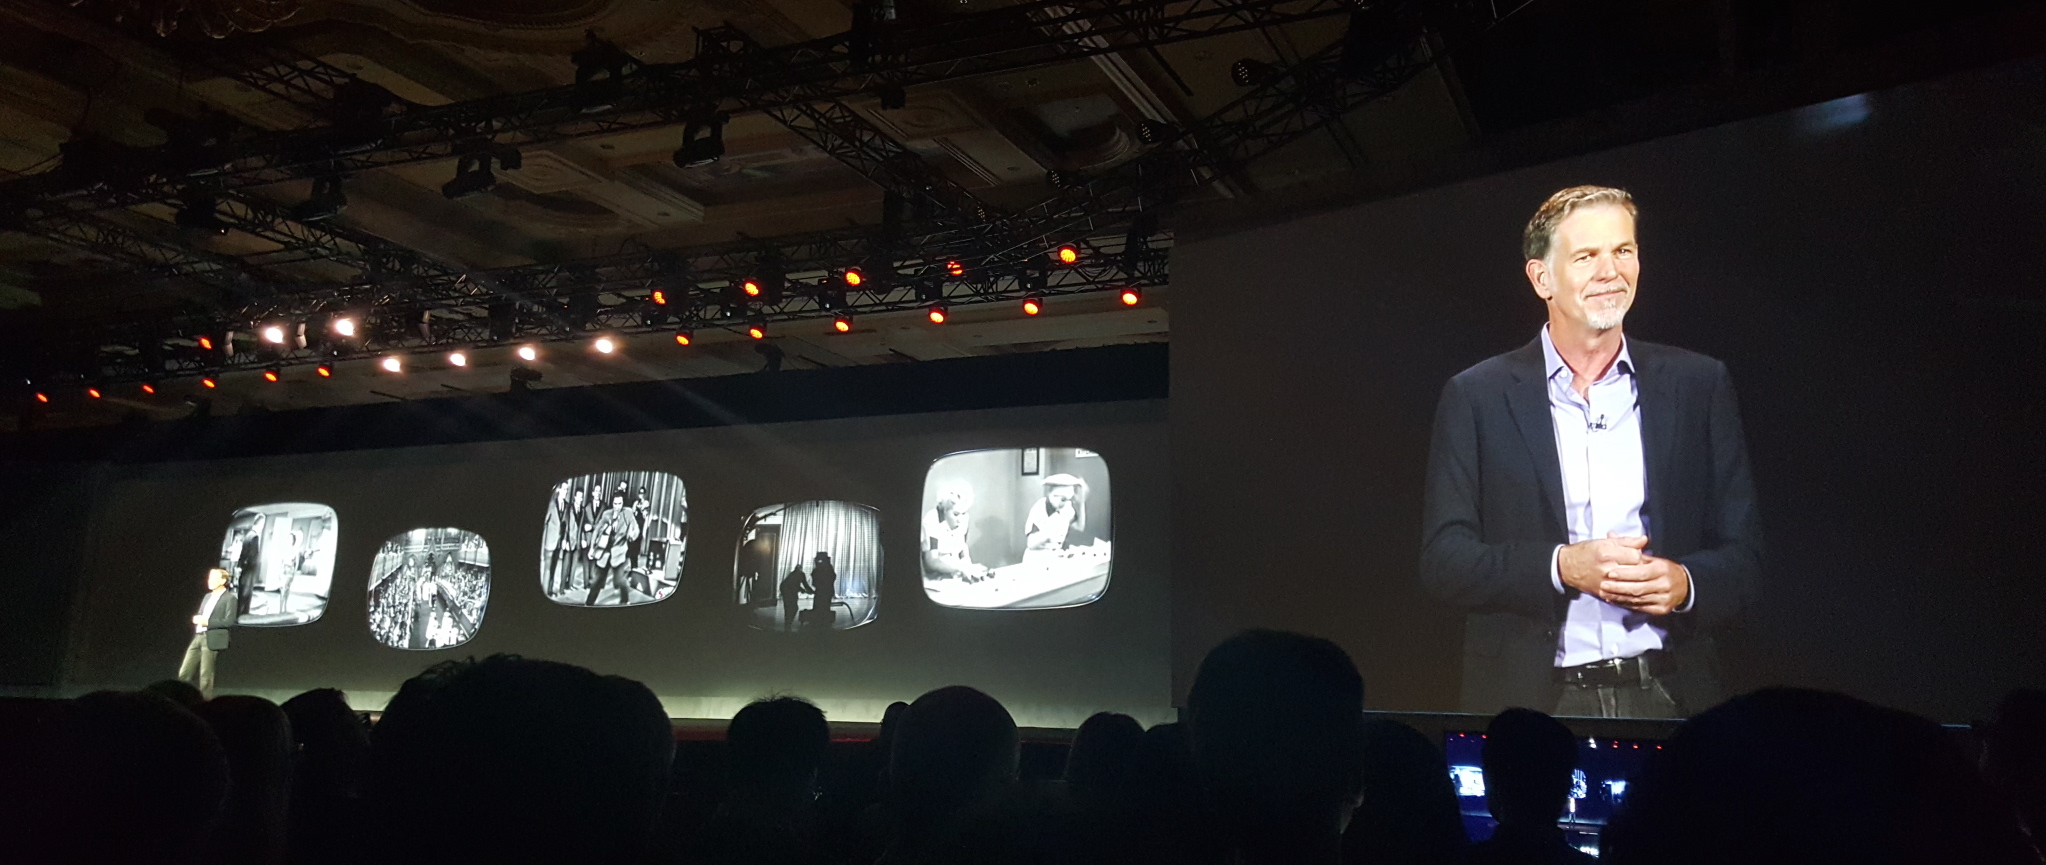 Reed Hastings on stage at the opening CES keynote.